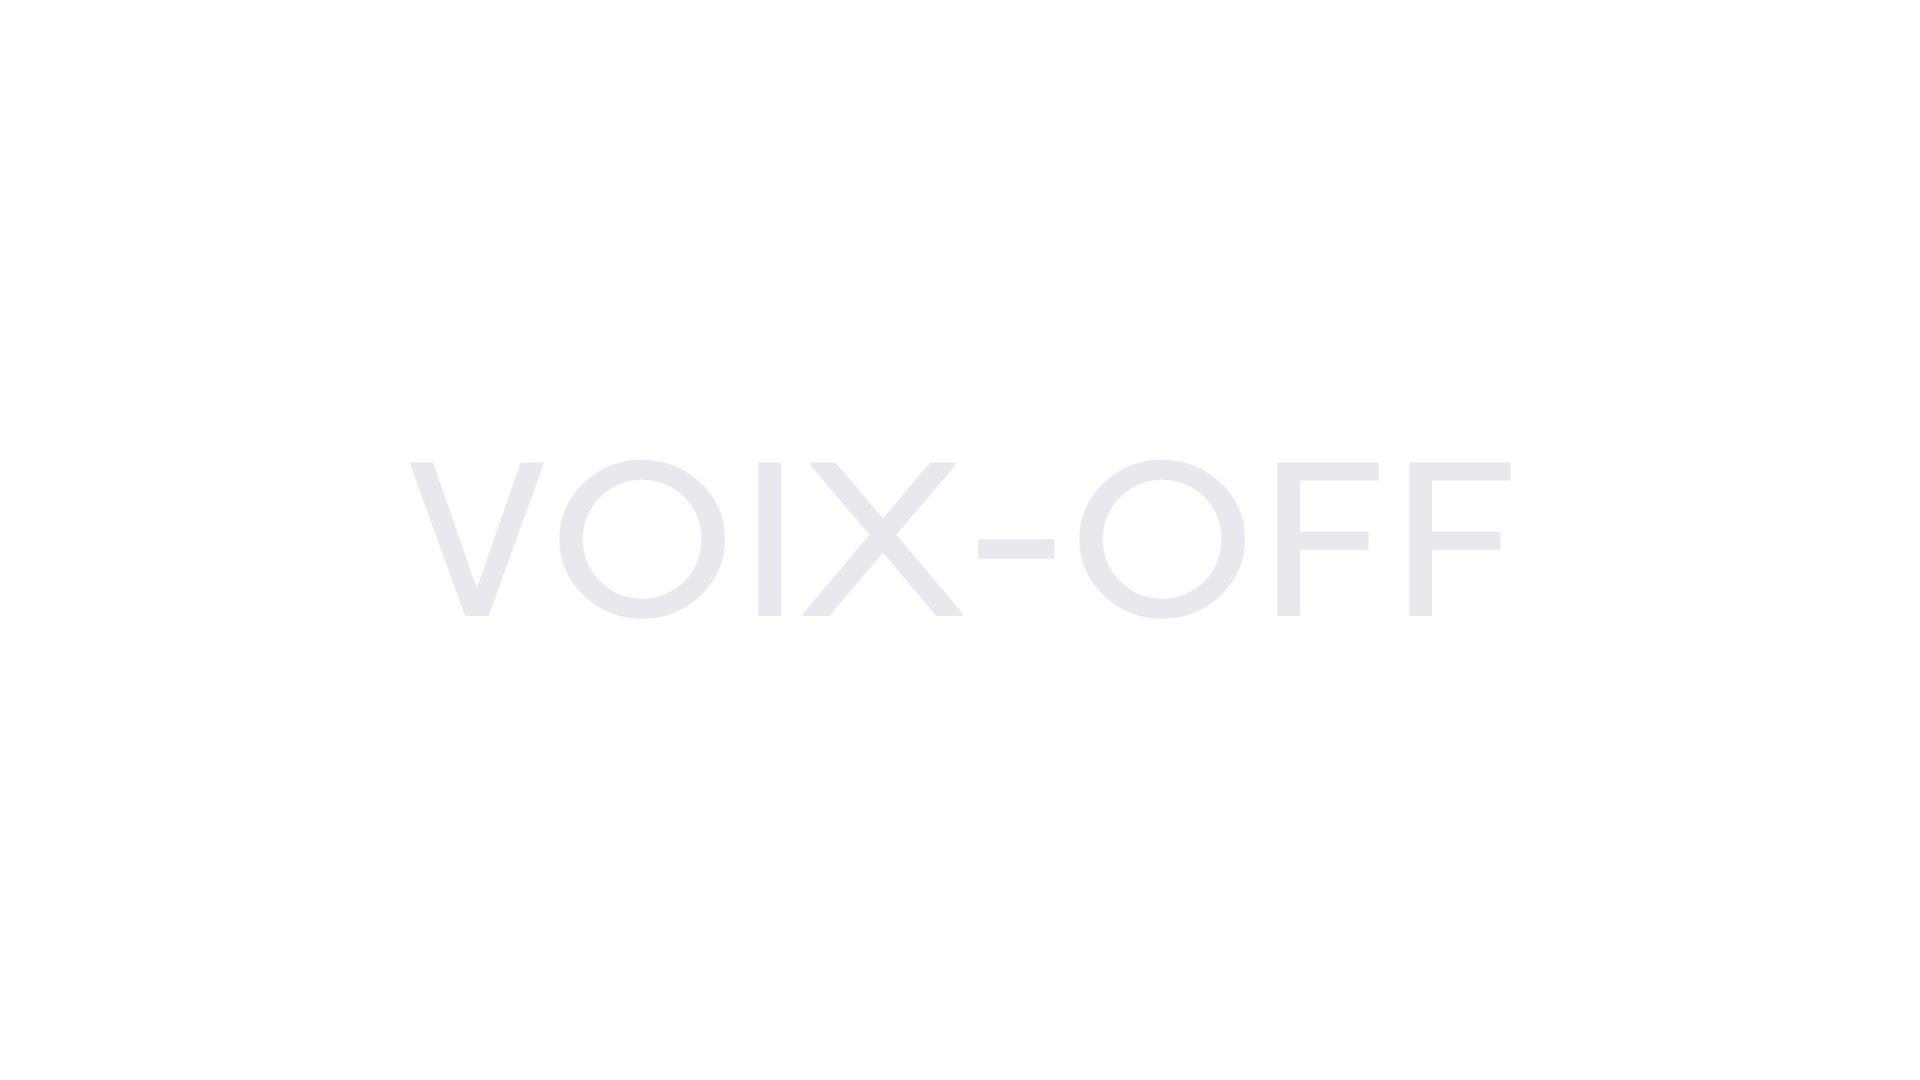 voix-off.png